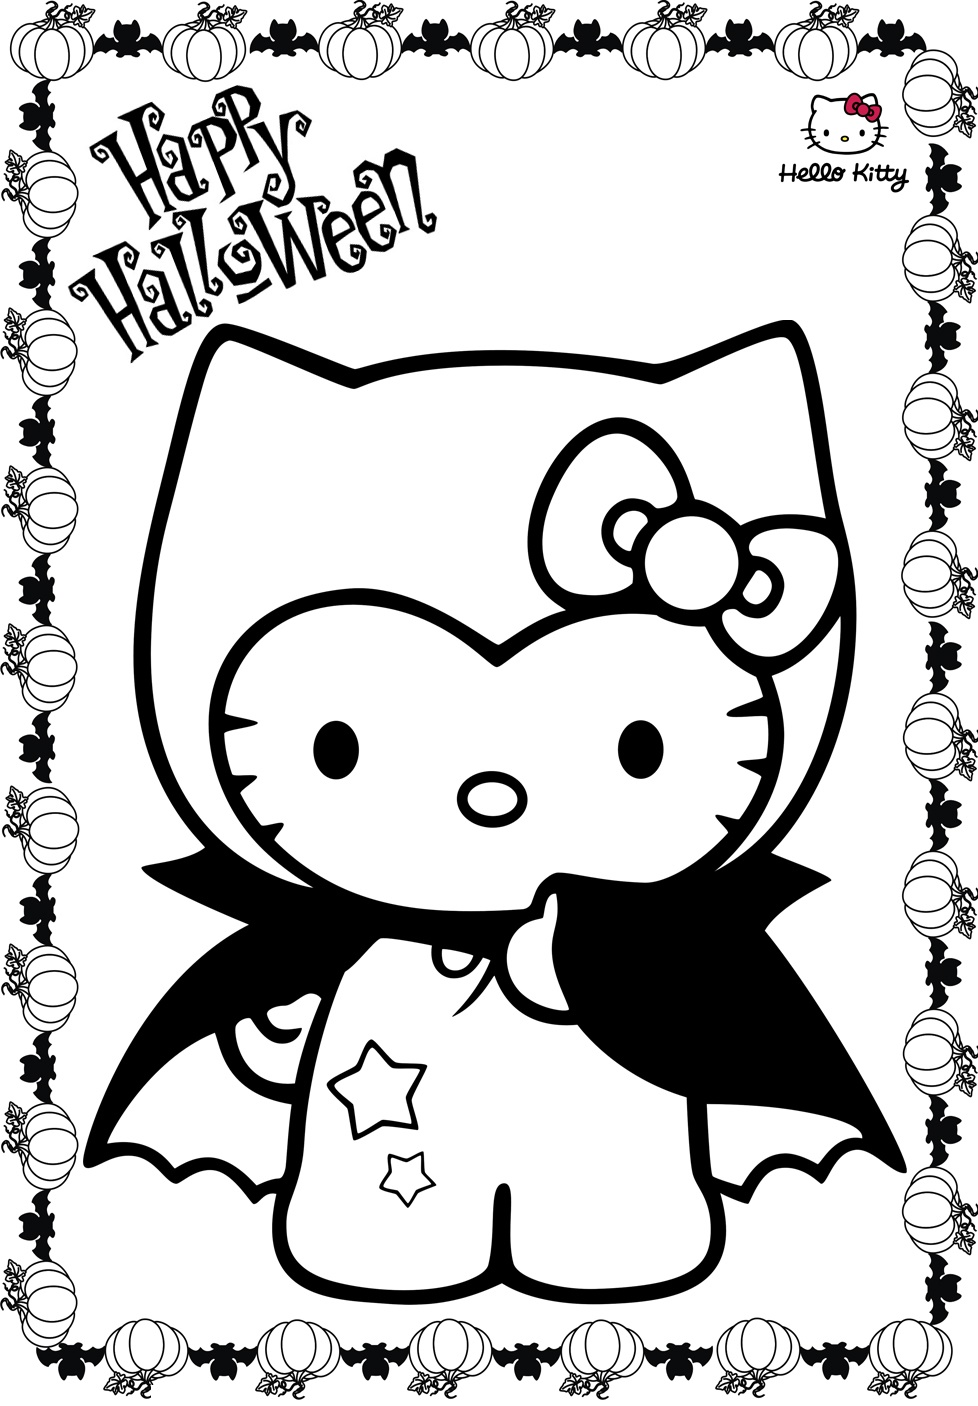 Hello Kitty Halloween Coloring Pages Printable Halloweencoloringpages Hello Kitty Halloween Coloring Hello Kitty Coloring Hello Kitty Halloween Kitty Coloring